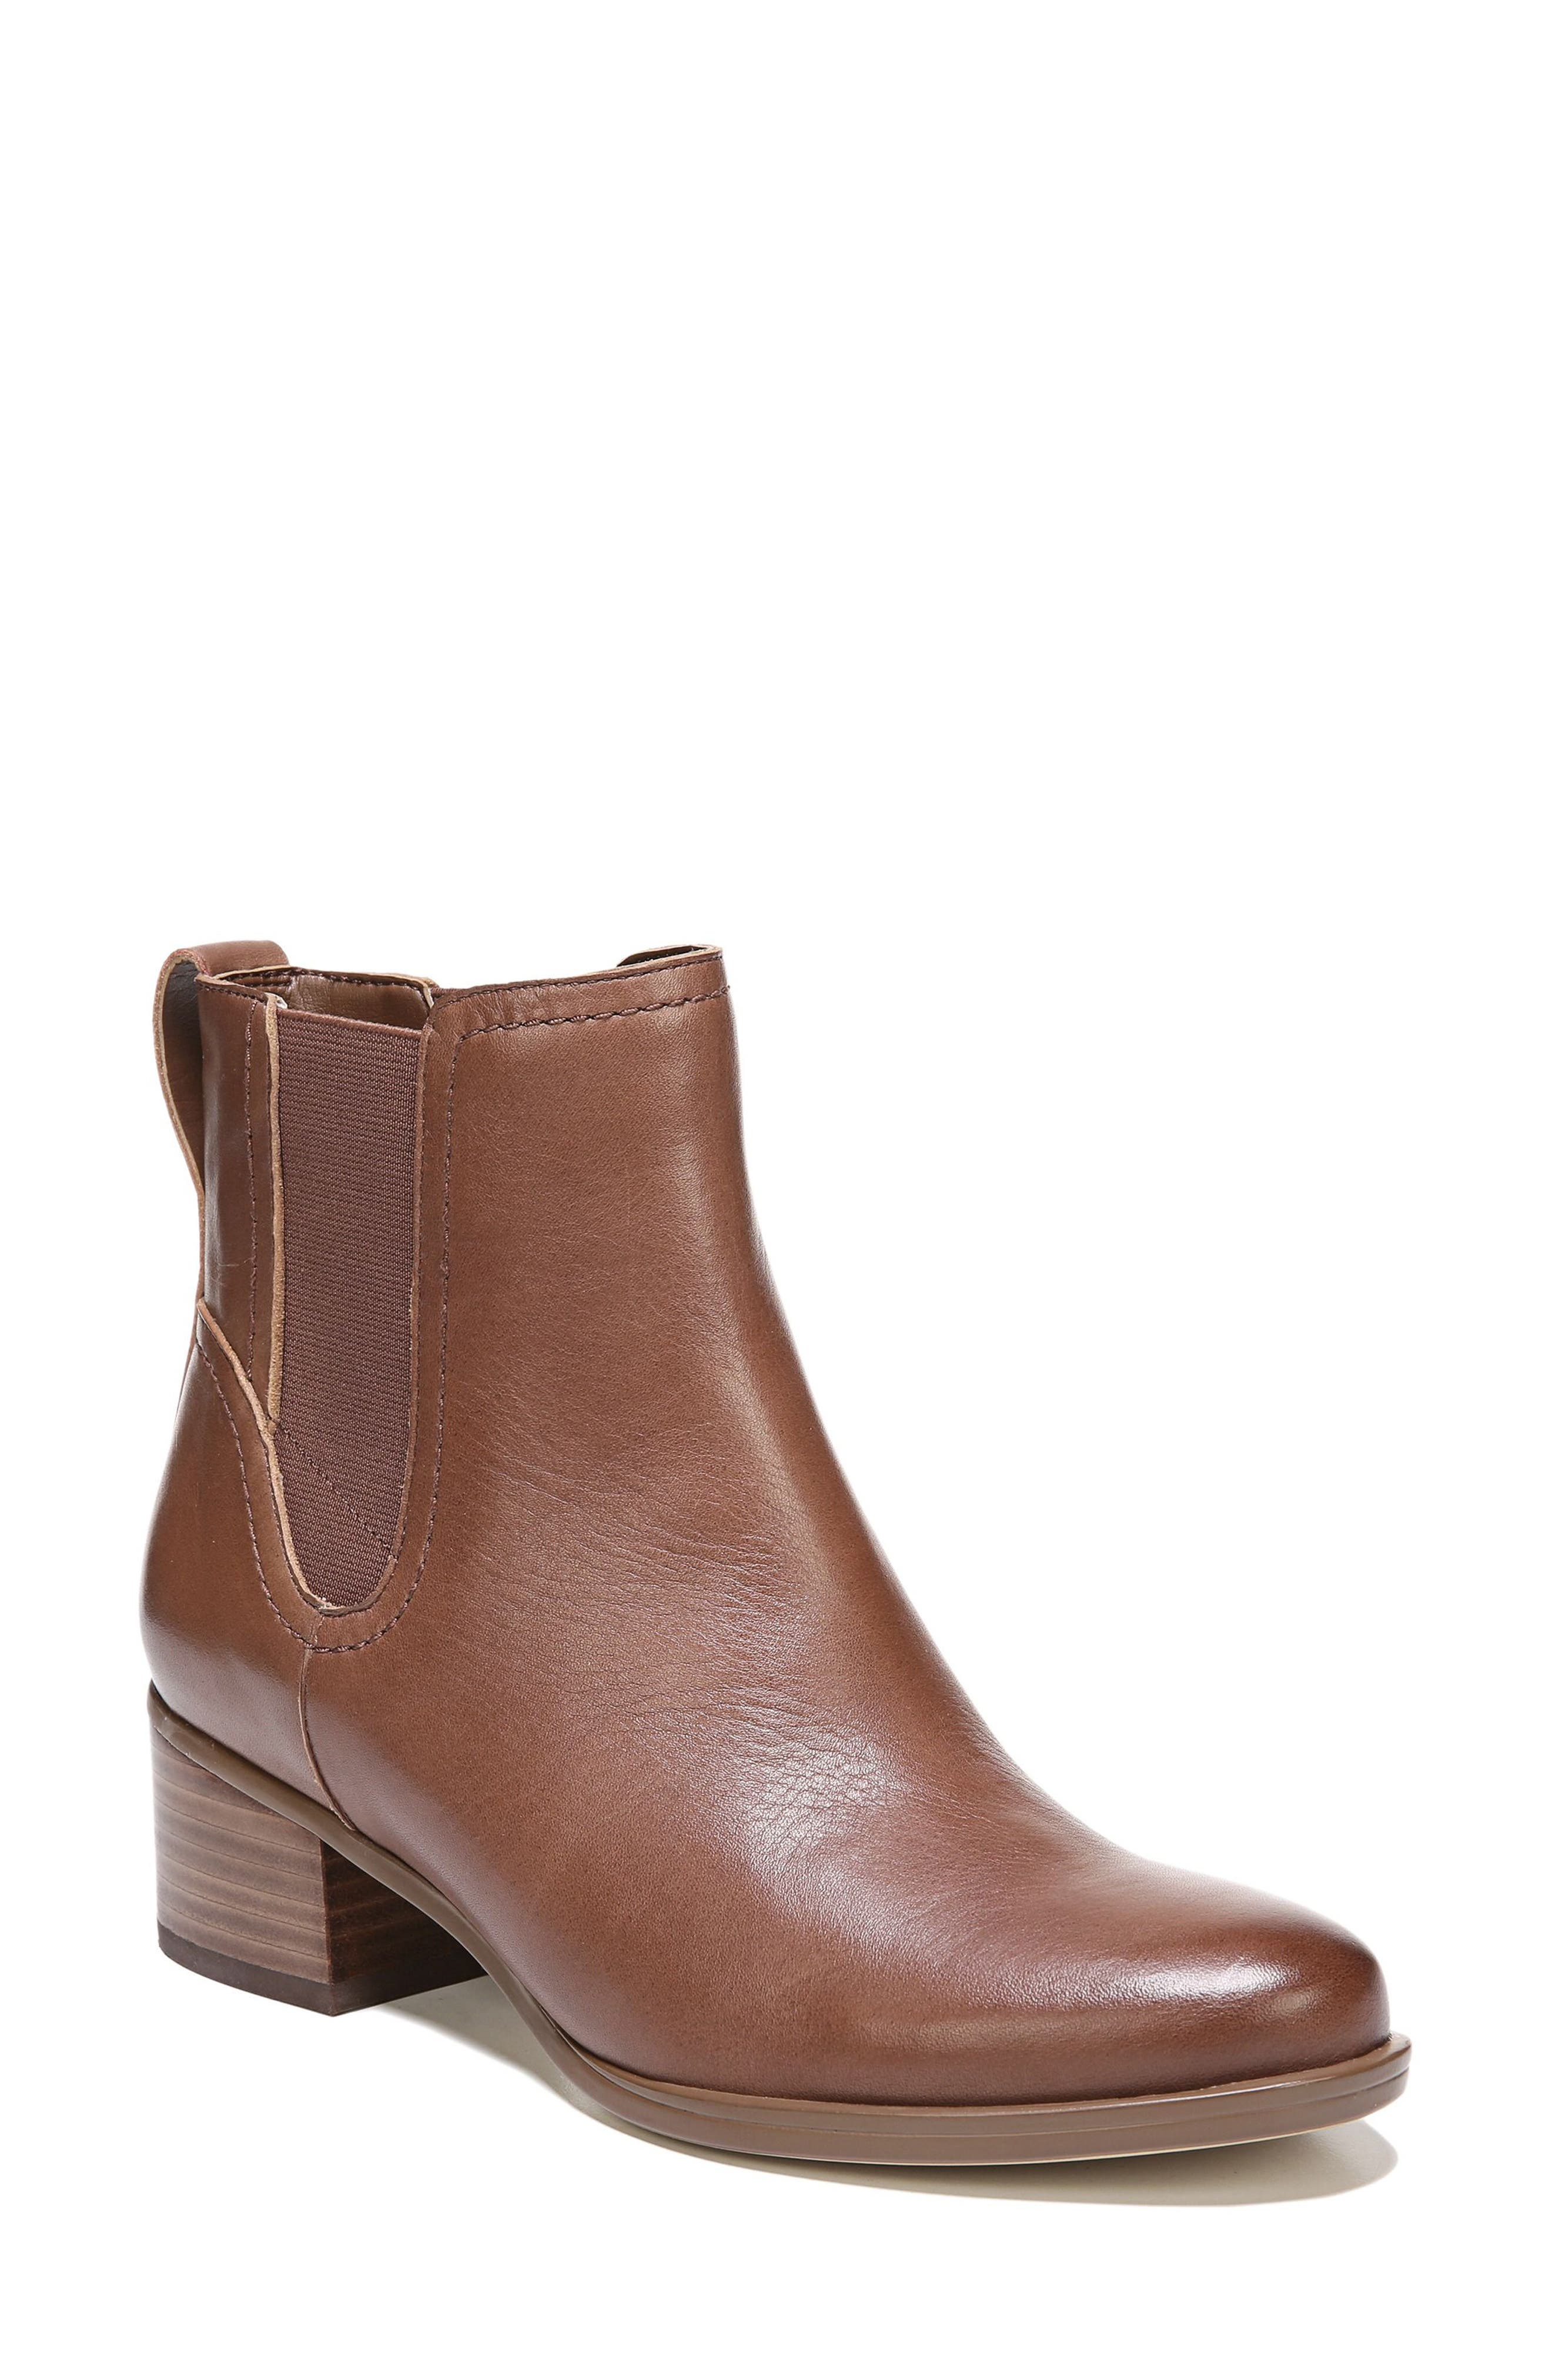 Dallas Chelsea Boot,                             Main thumbnail 1, color,                             Coffee Bean Leather